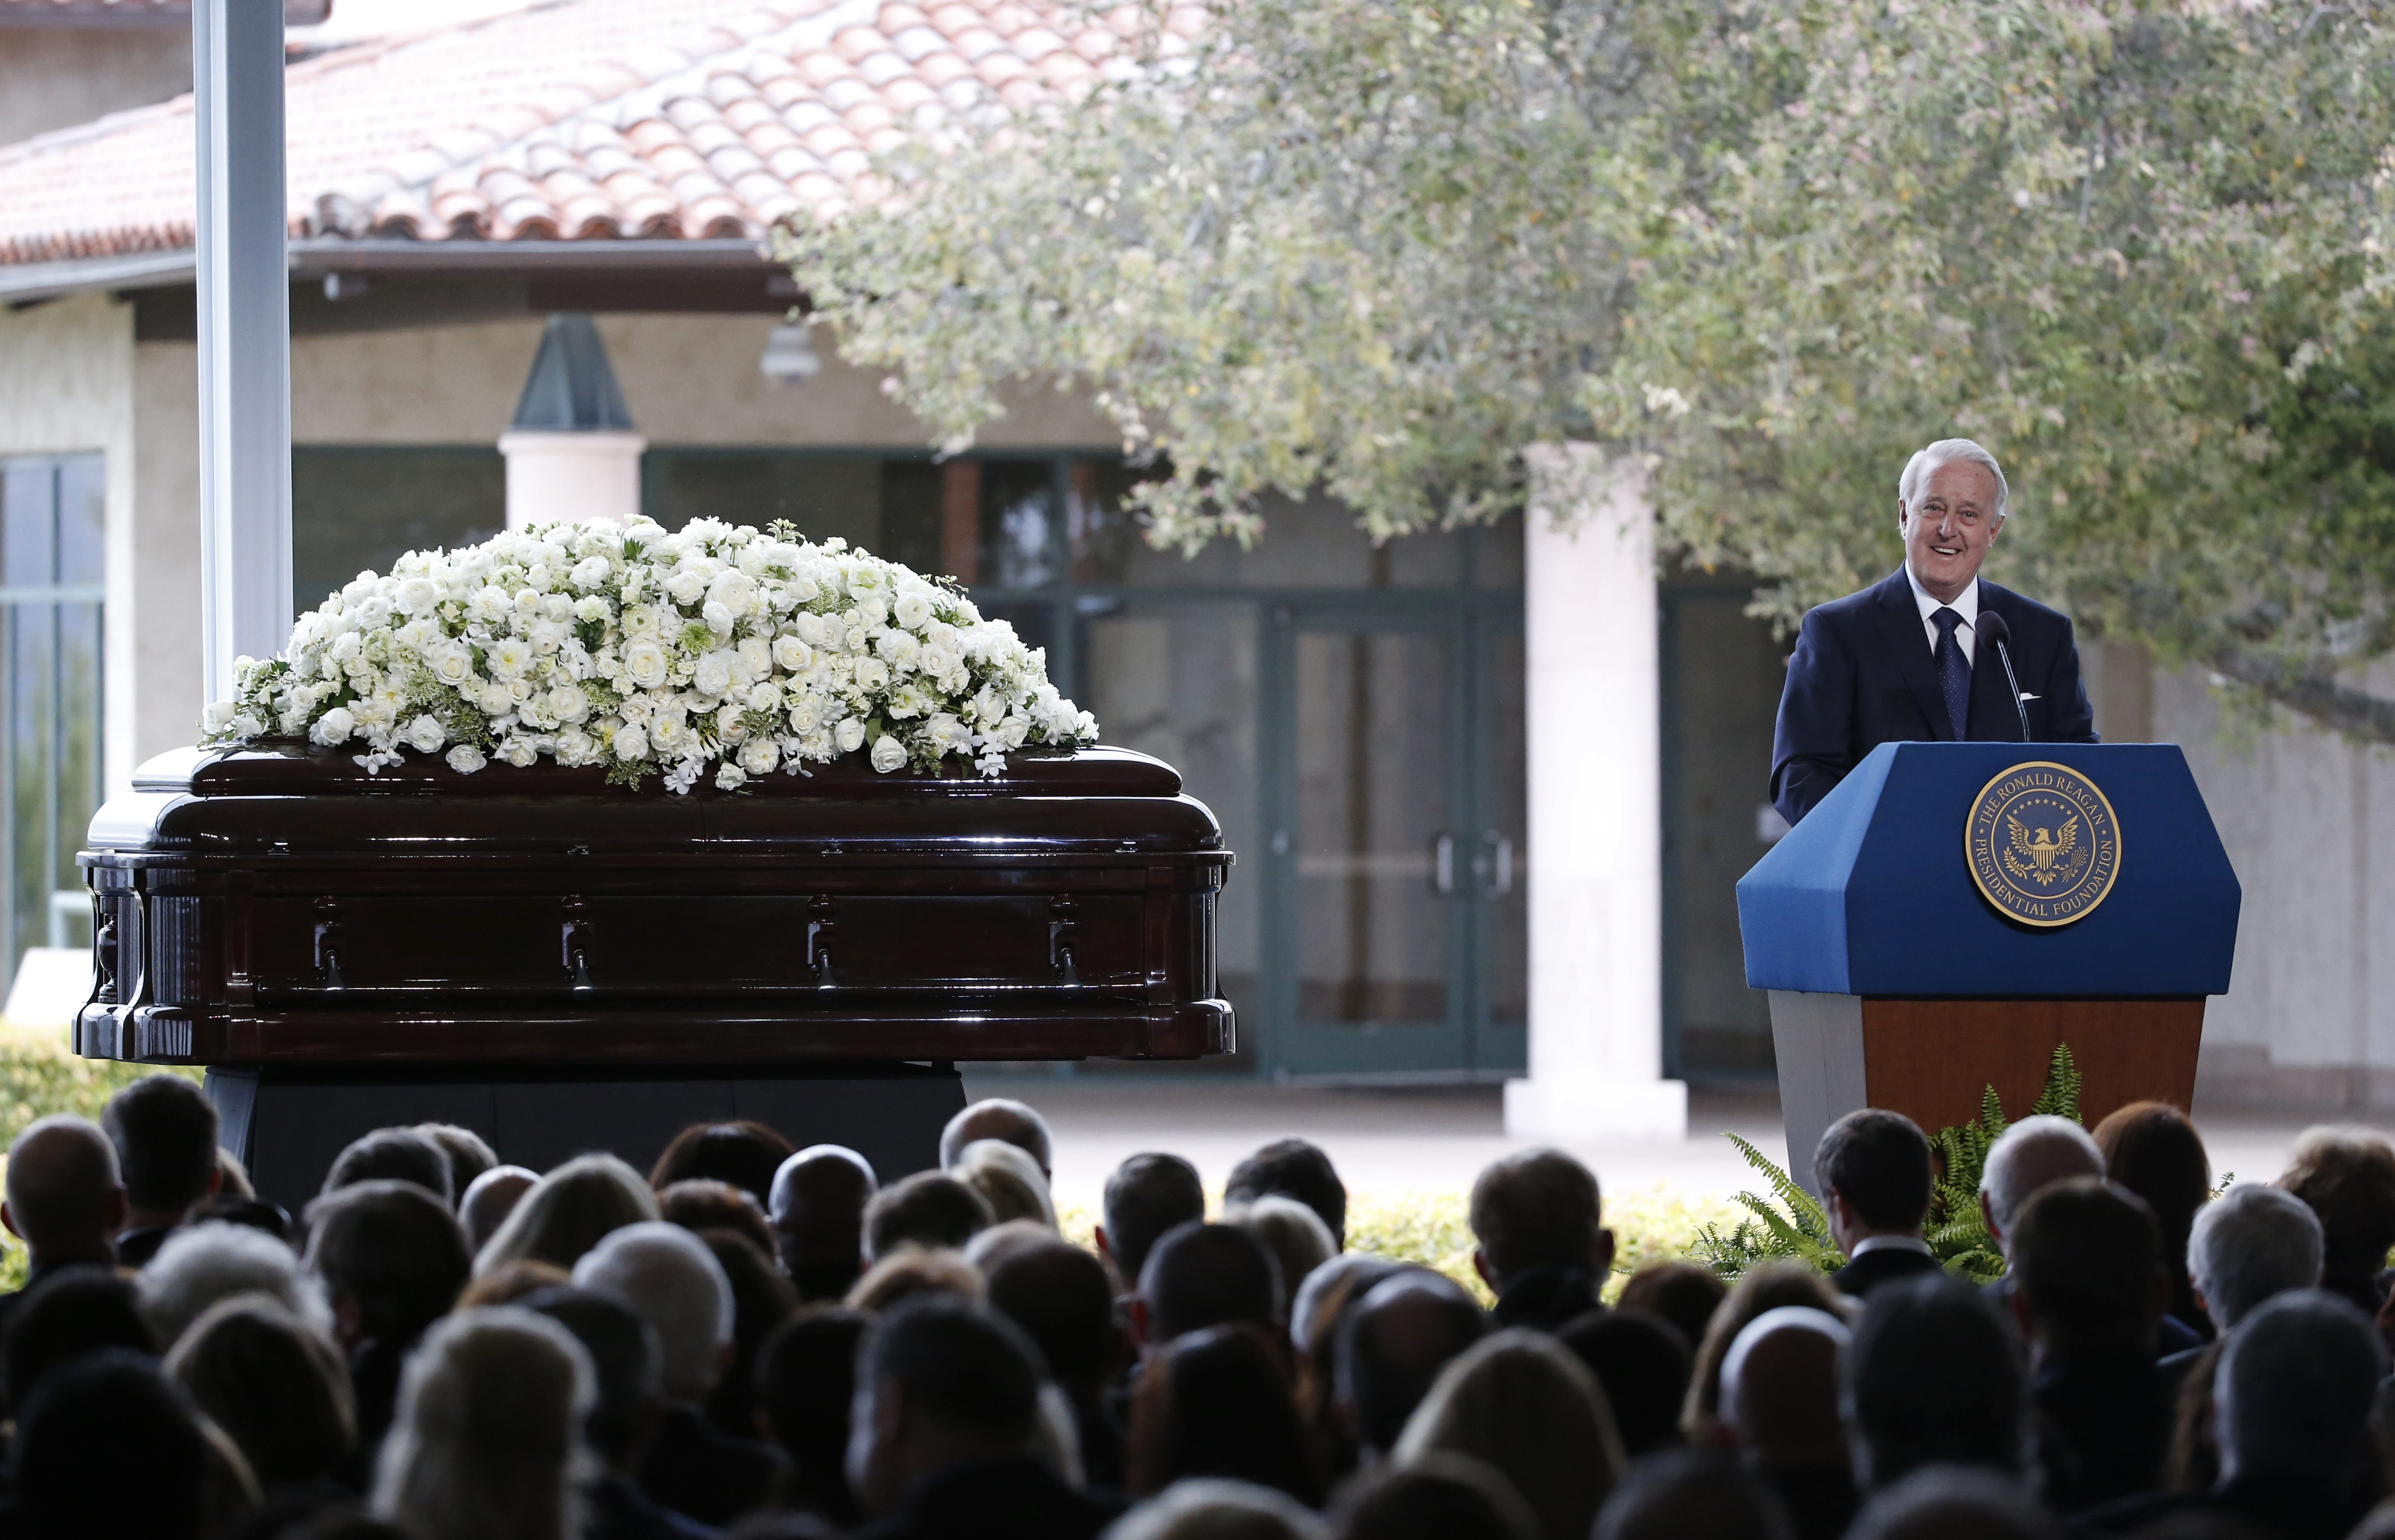 Former Prime Minister of Canada Brian Mulroney, who served while Ronald Reagan was president, speaks at the funeral of Nancy Reagan at the Ronald Reagan Presidential Library in Simi Valley, California, United States, March 11, 2016. REUTERS/Lucy Nicholson